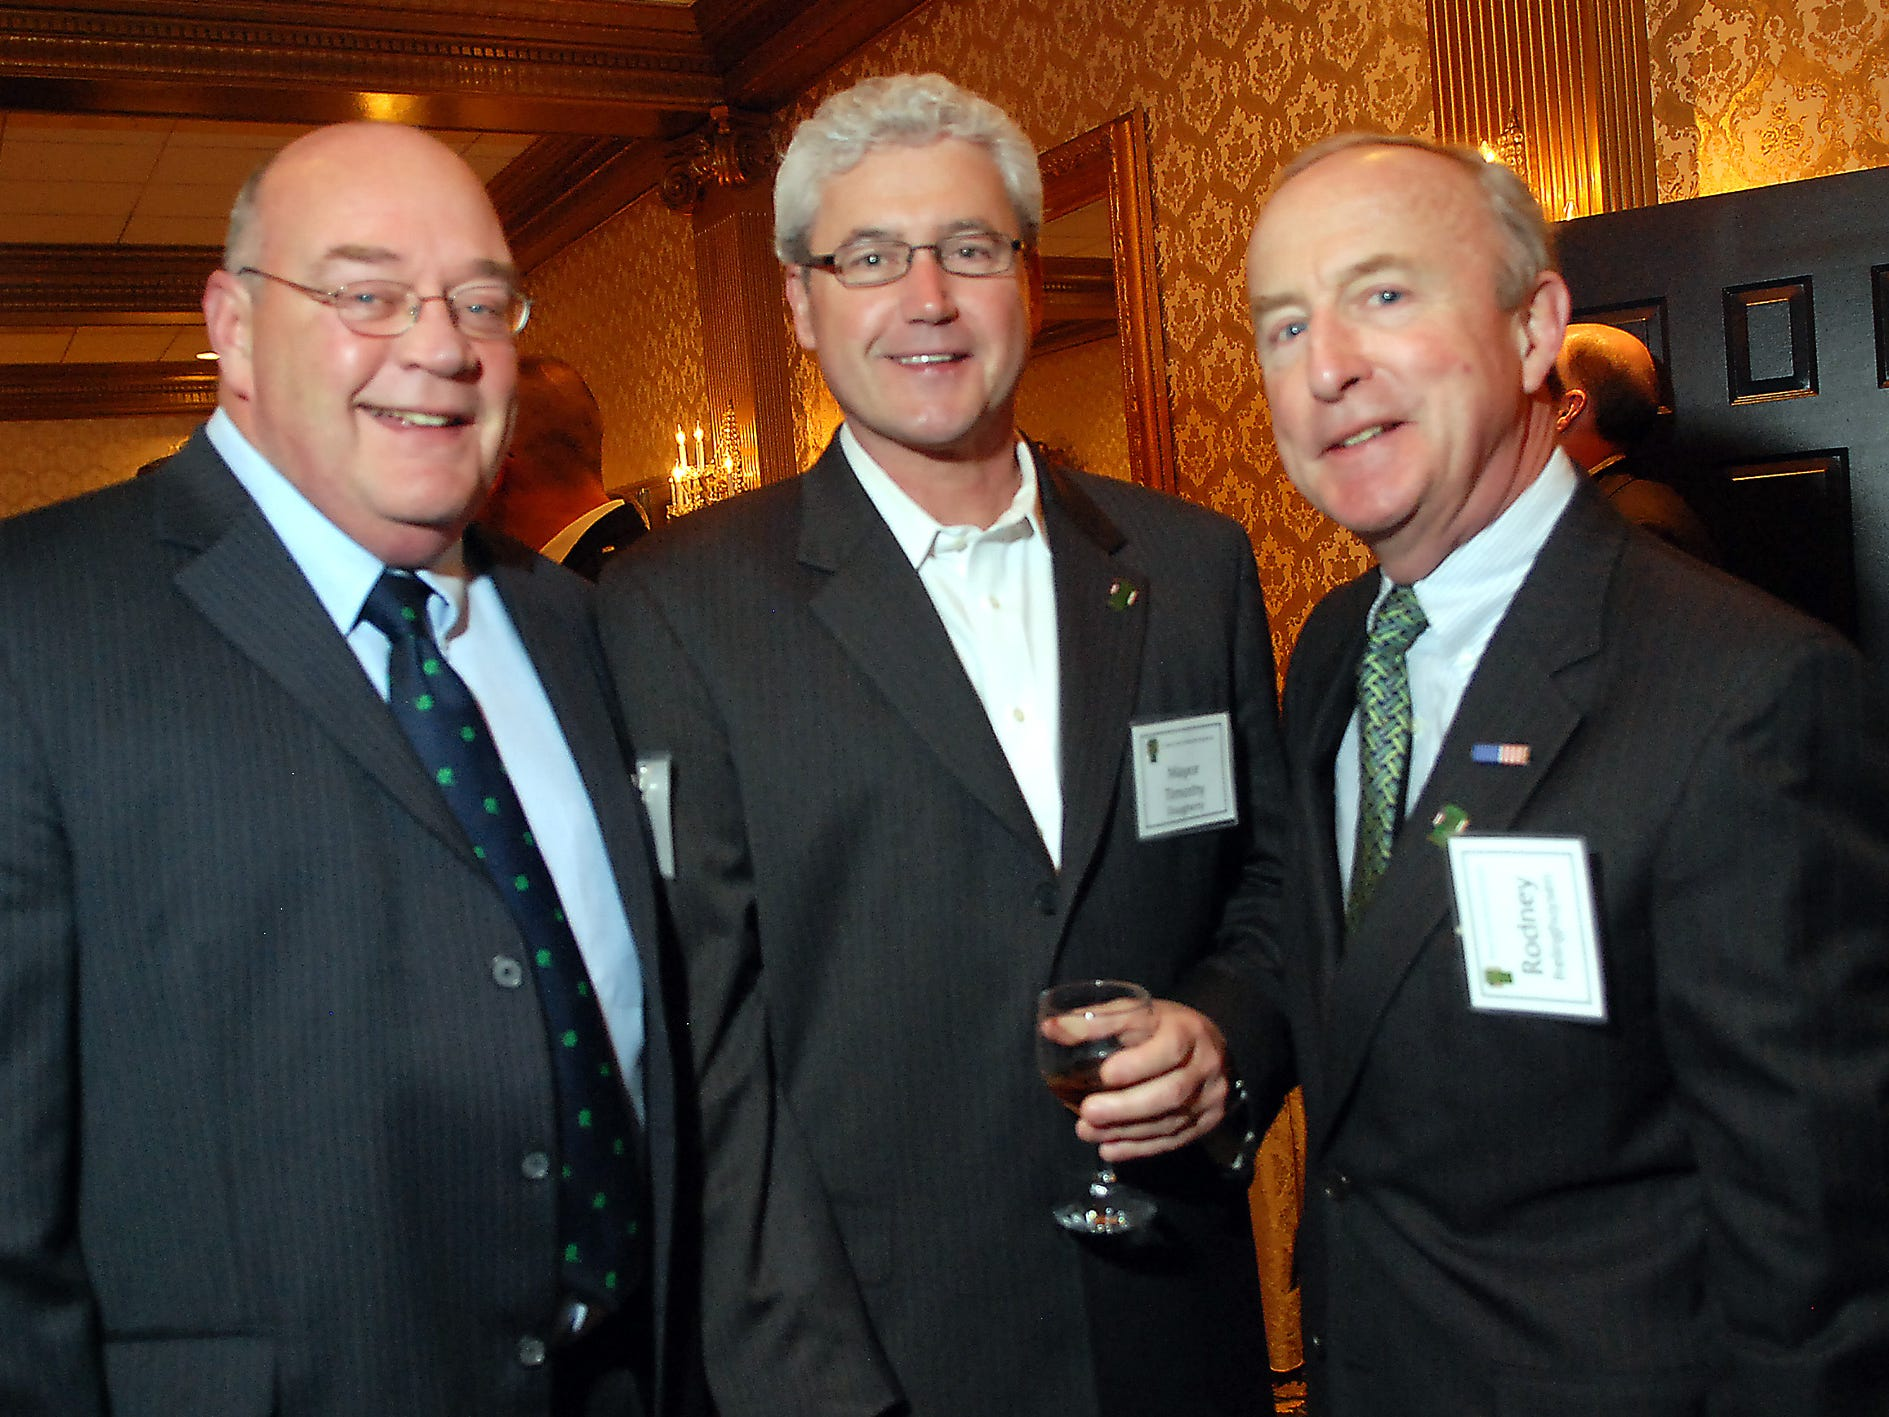 Convent Station, March 2, 2012 -- From left, Timothy Murphy of Morristown, Morristown mayor Timothy Dougherty, and U.S. Rep. Rodney Frelinghuysen. The annual Grand Marshal reception at the Madison Hotel. This year's Grand Marshal is Rich Smith.